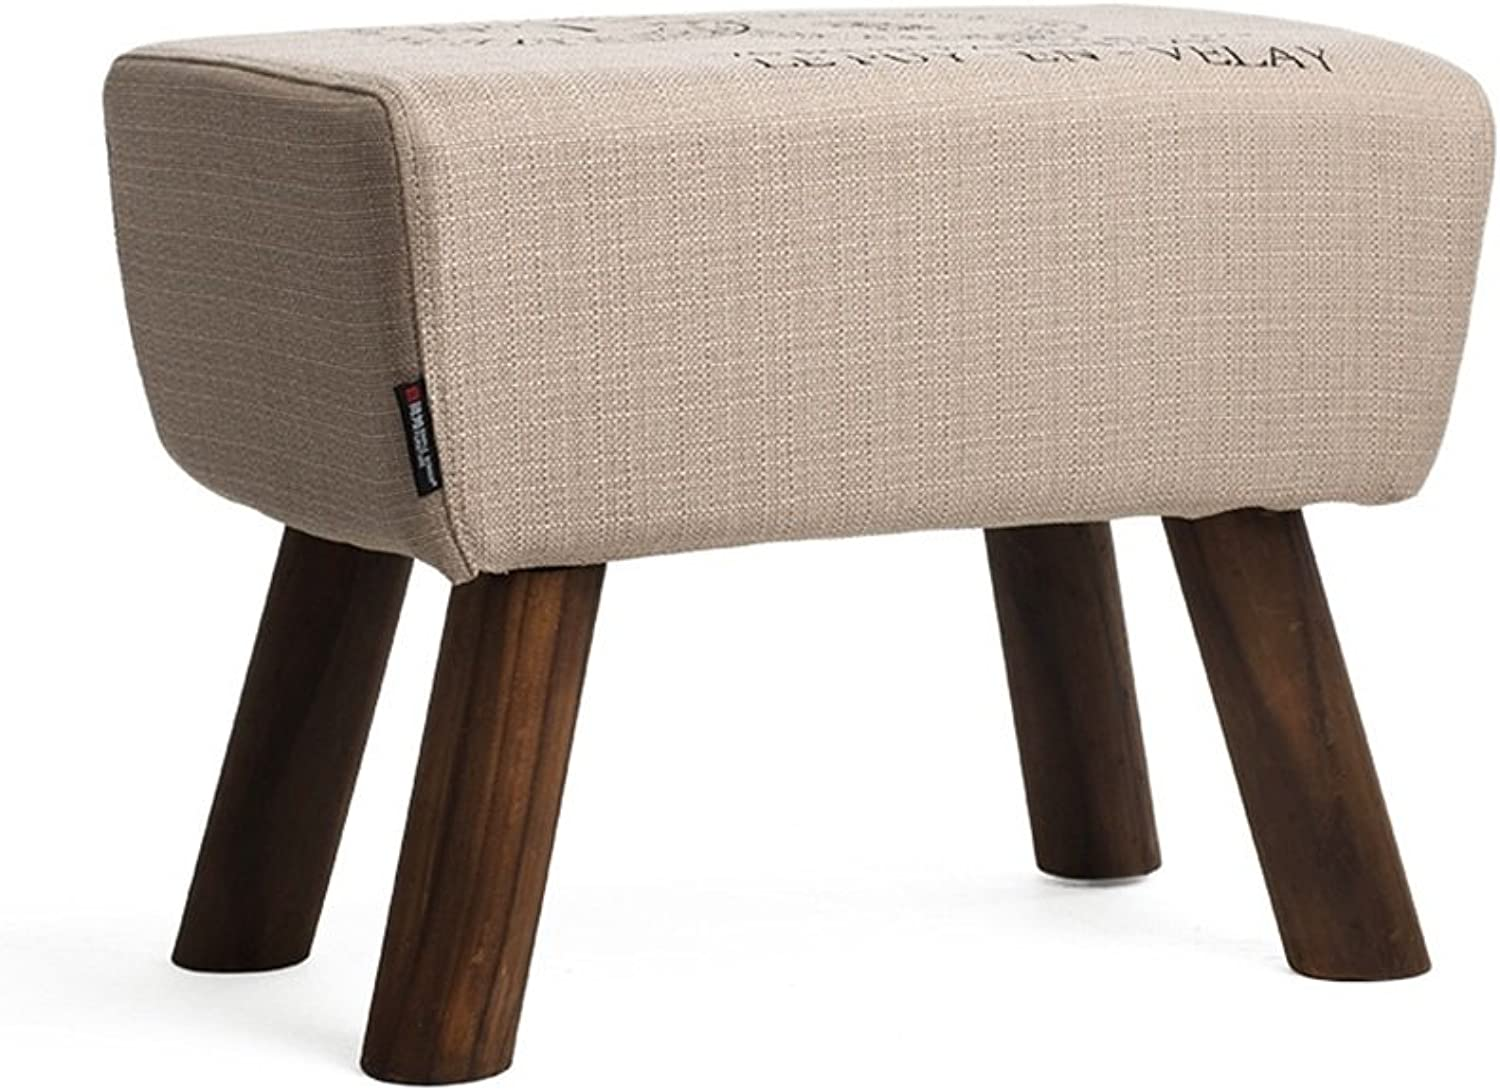 HQCC Solid Wood Living Room Small Stool Sofa Stool